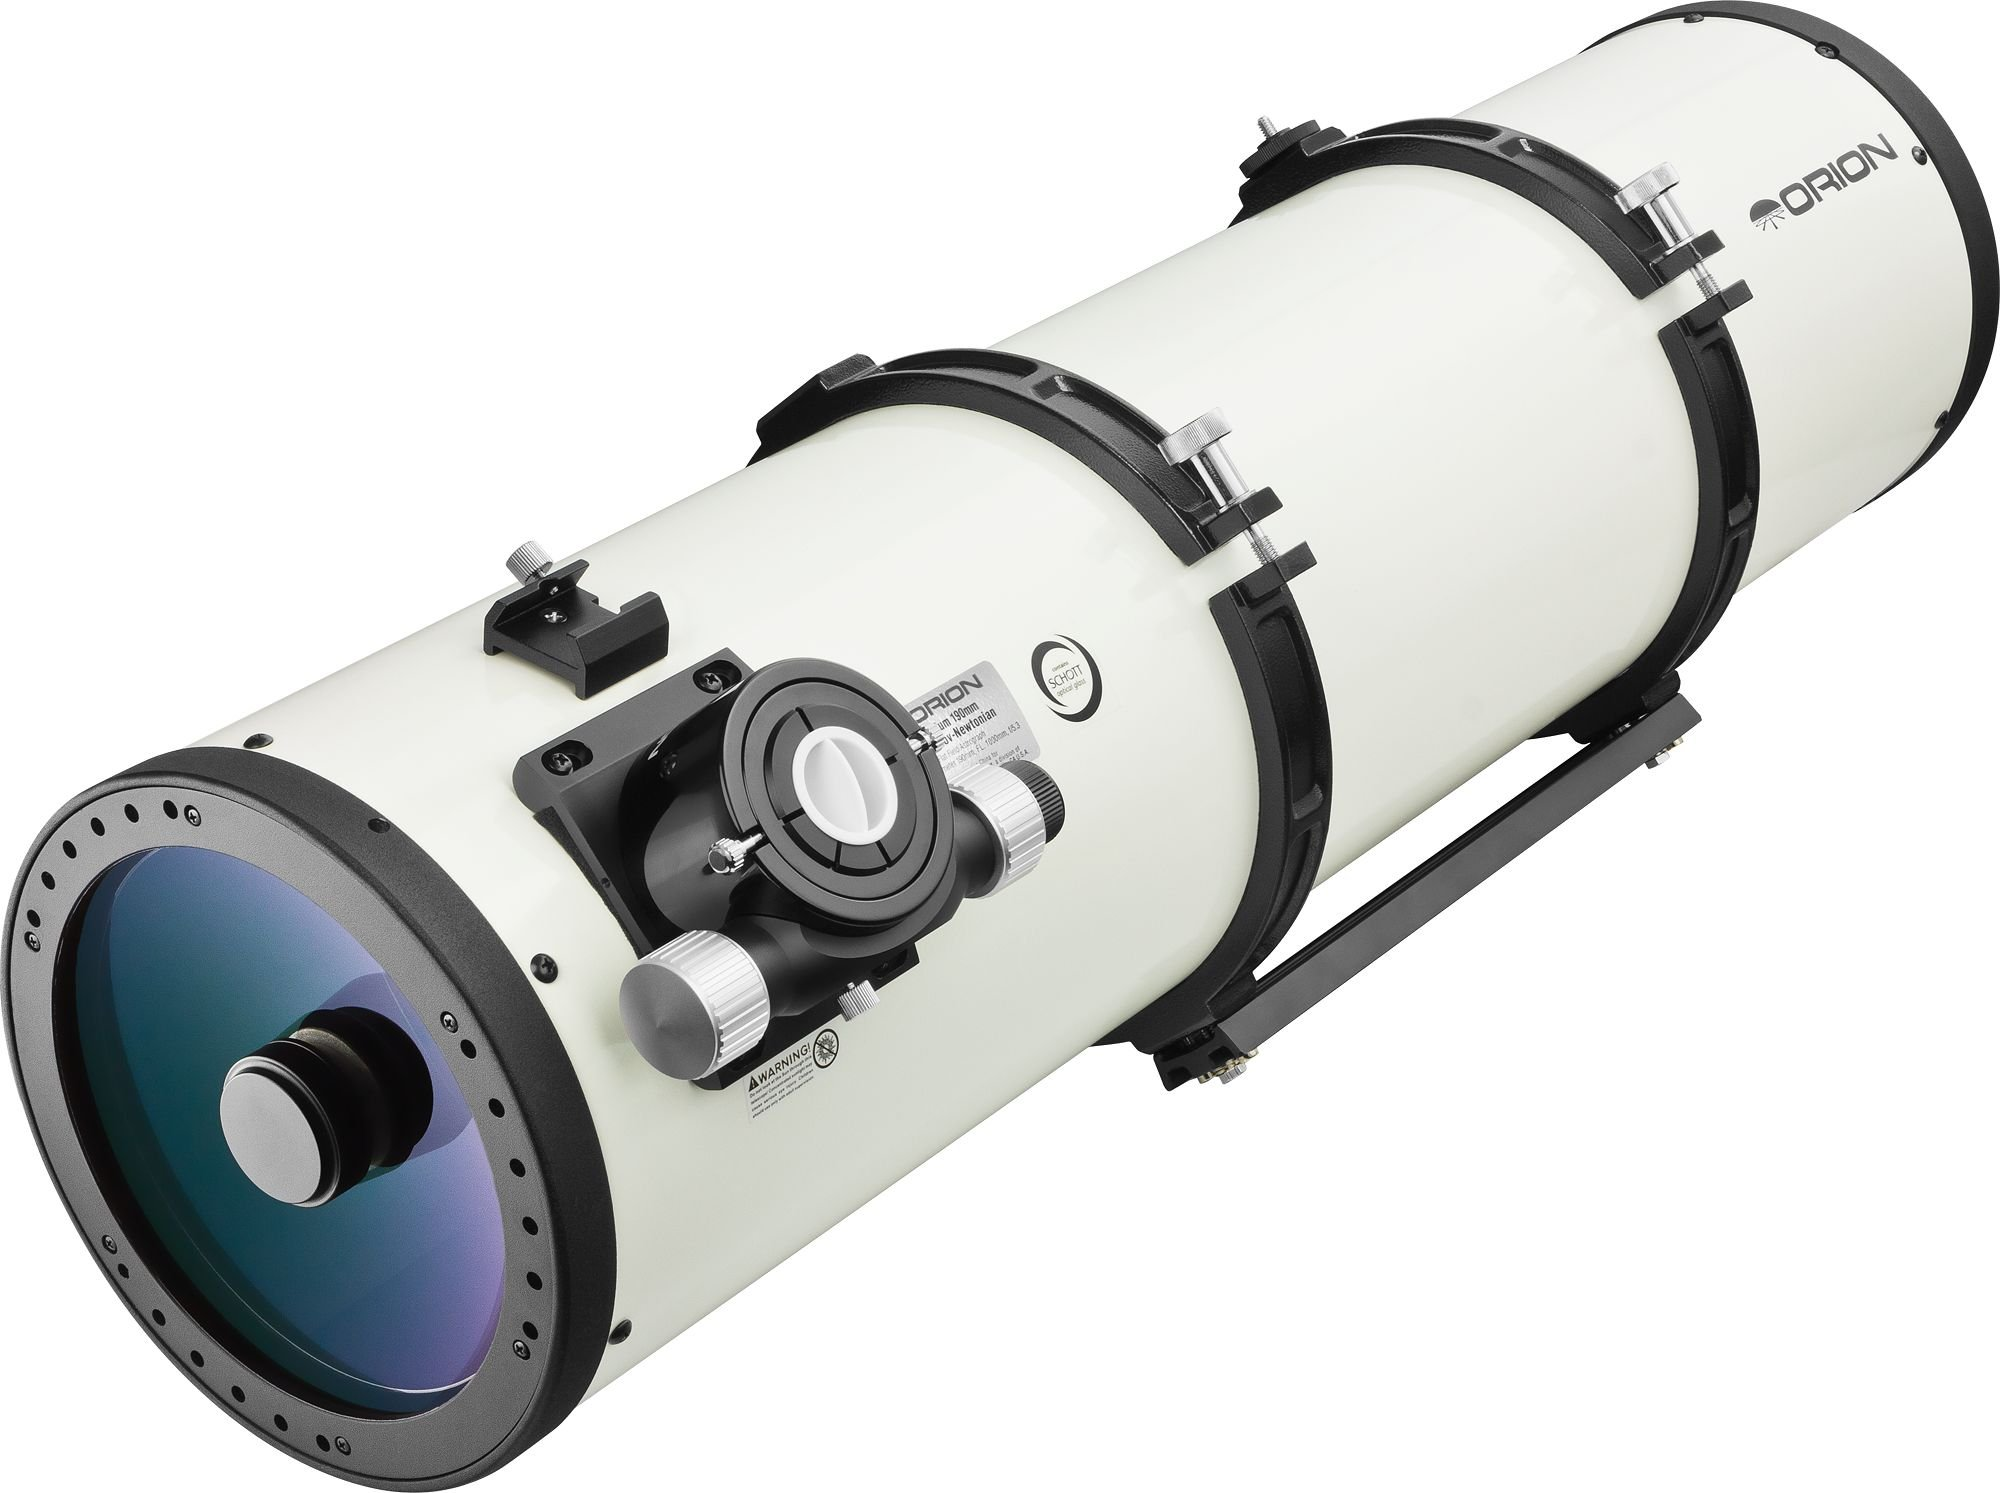 Orion Premium 190mm f/5.3 Mak-Newt Astrograph Telescope by Orion